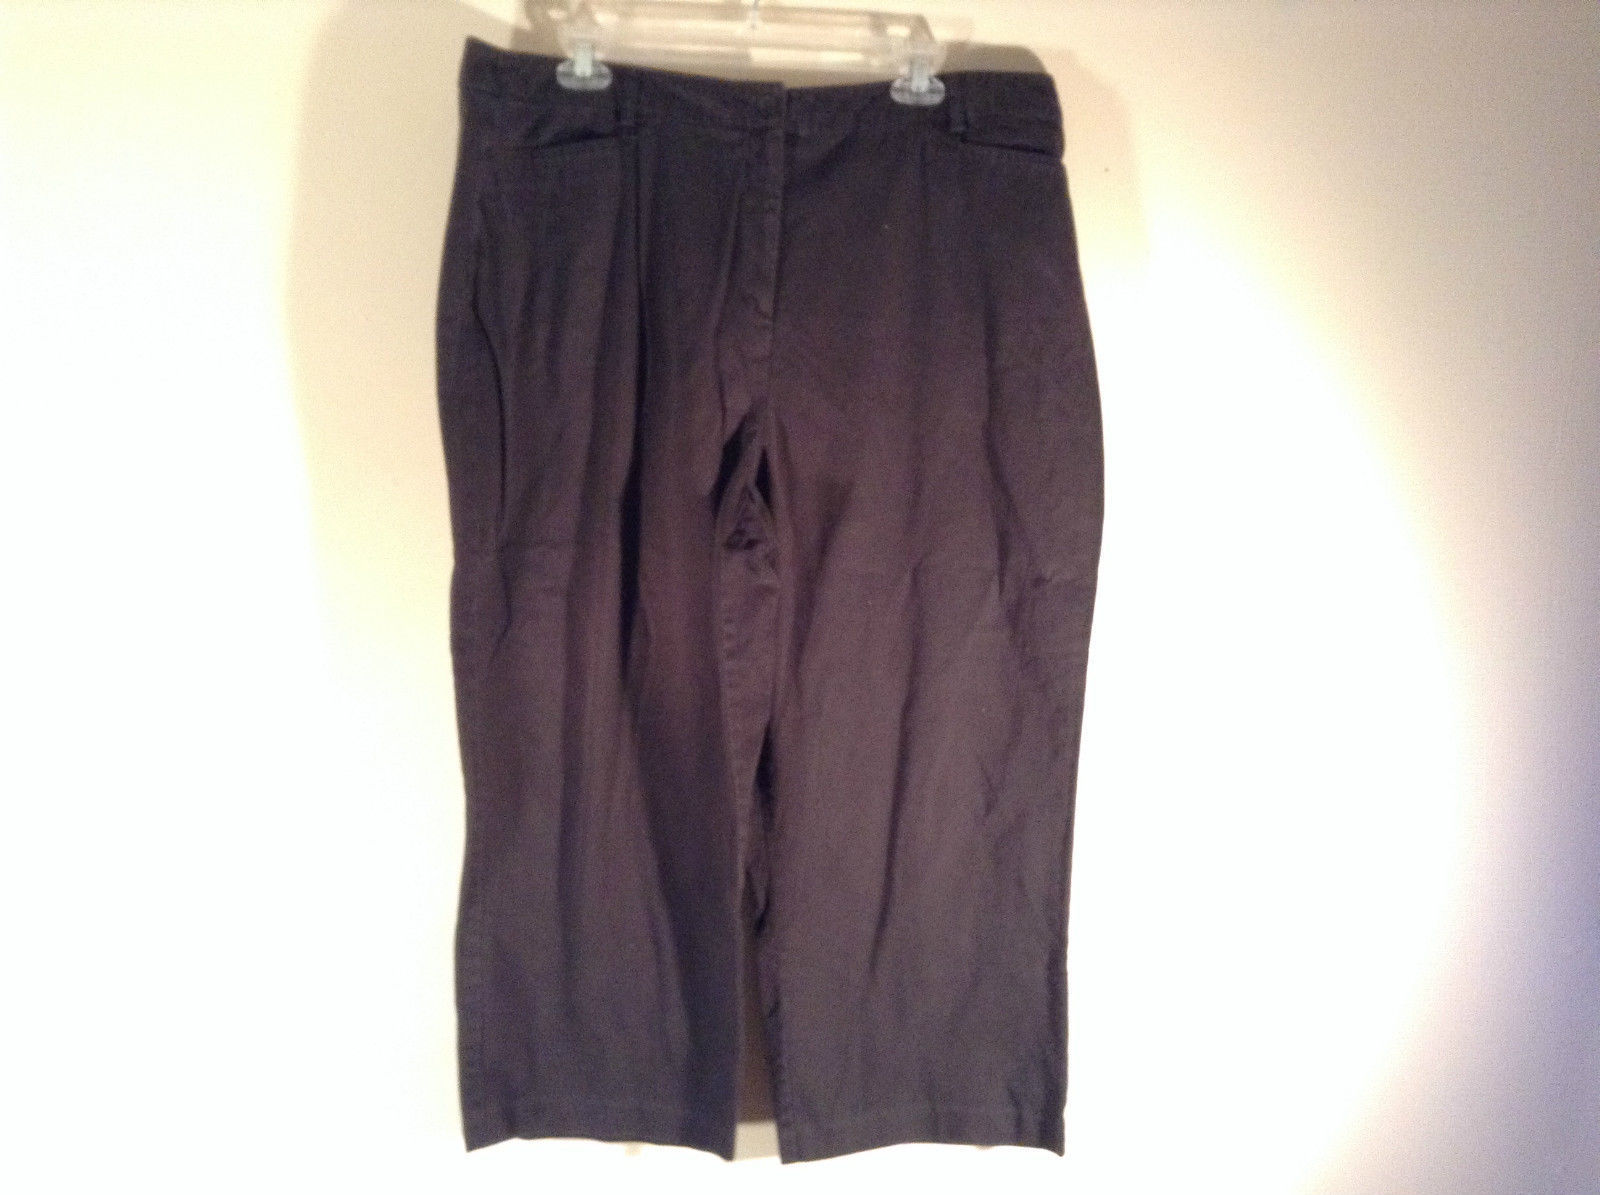 Sag Harbor Stretch Size 18 Black Capri Pants Front and Back Pockets Zip Closure